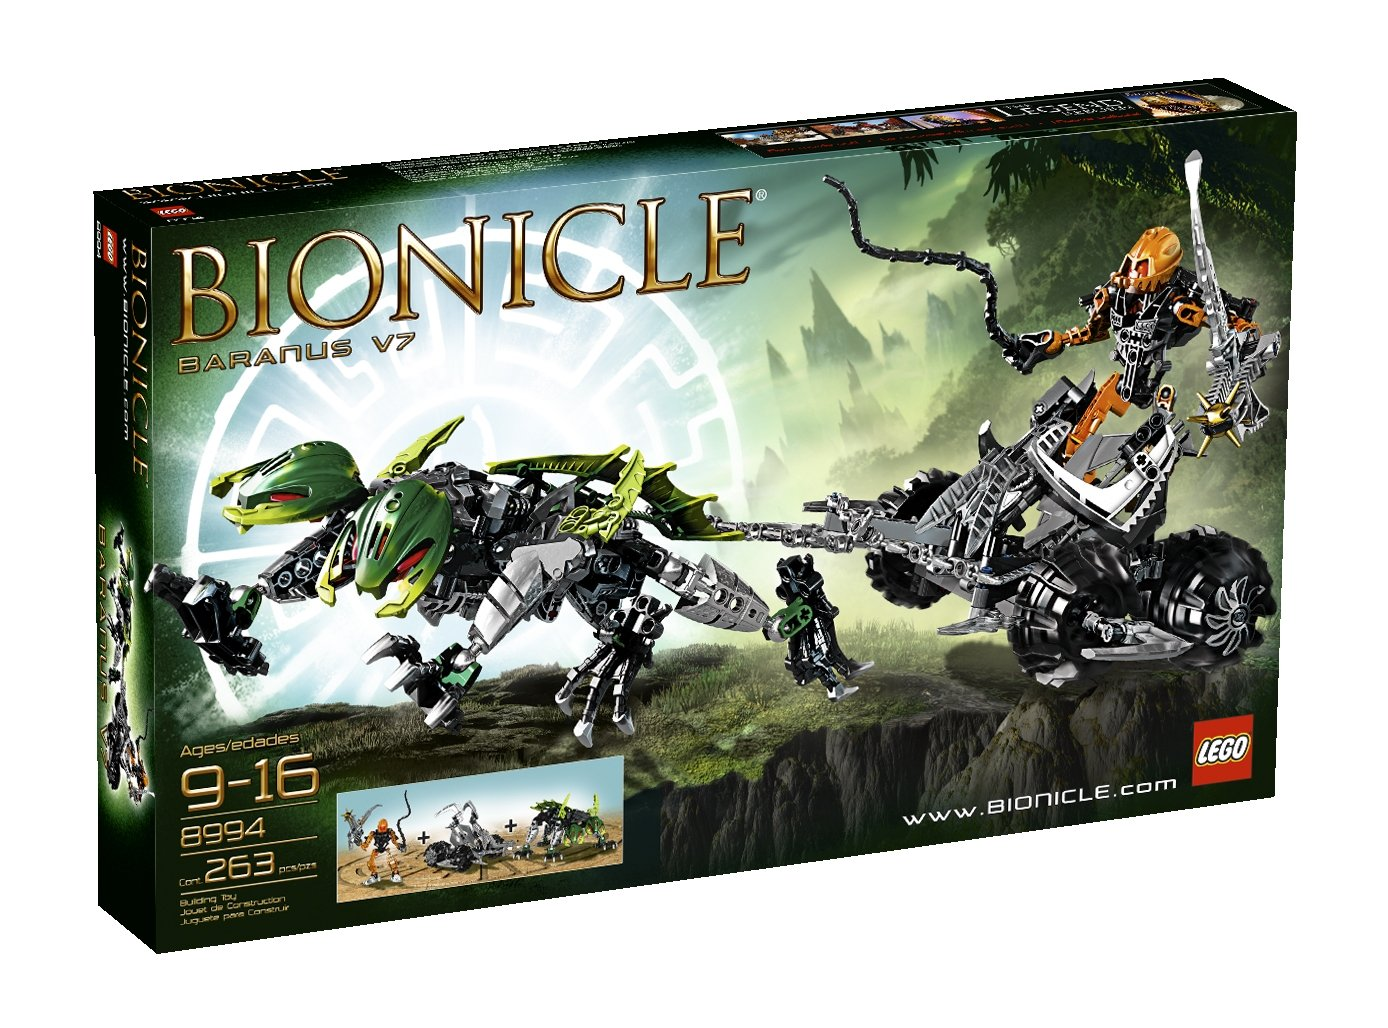 15 Best Lego BIONICLE Sets Reviews of 2021 10